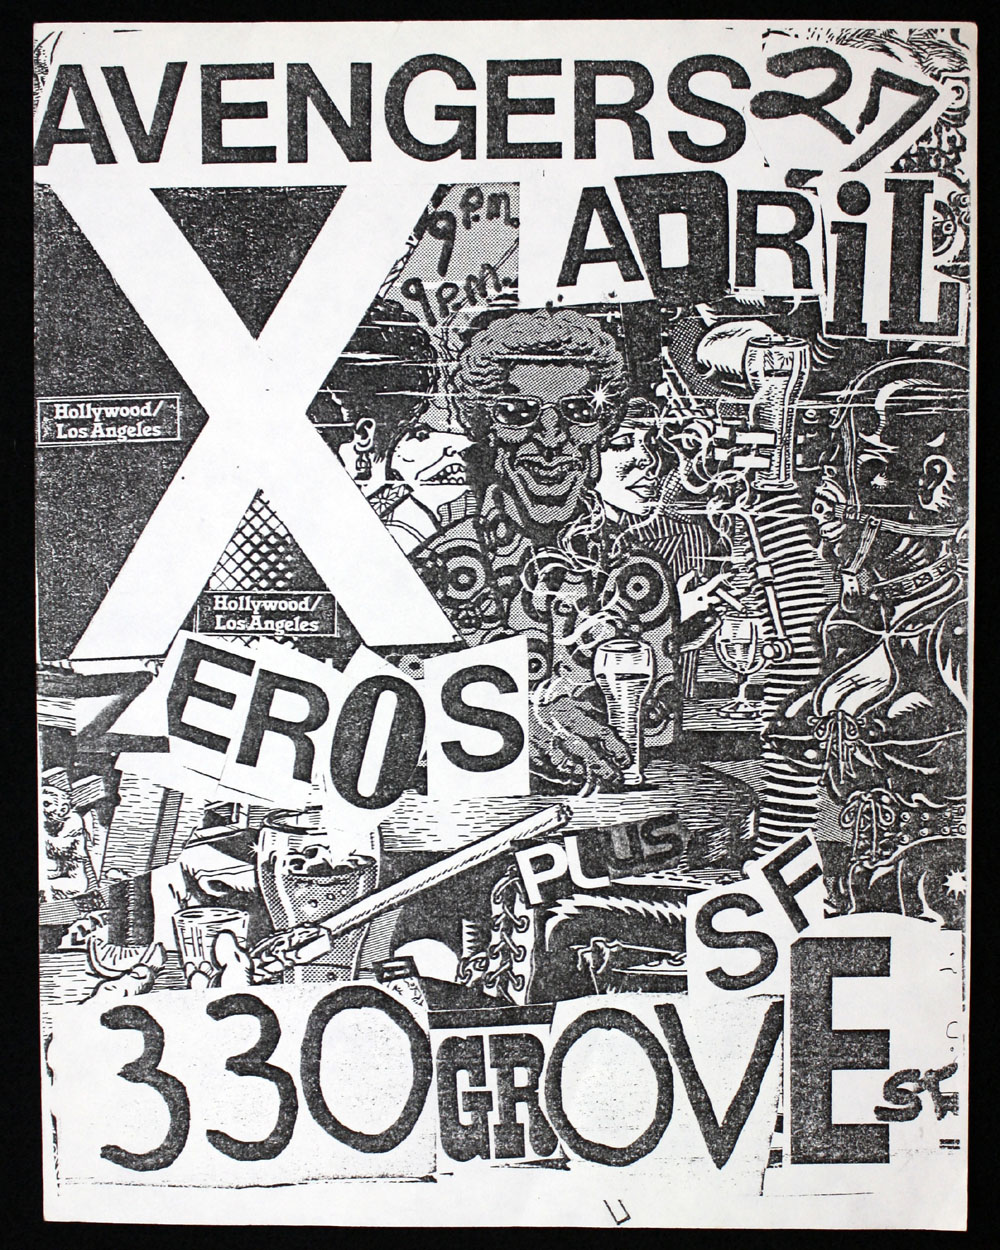 AVENGERS w/ X, Zeros at 330 Grove